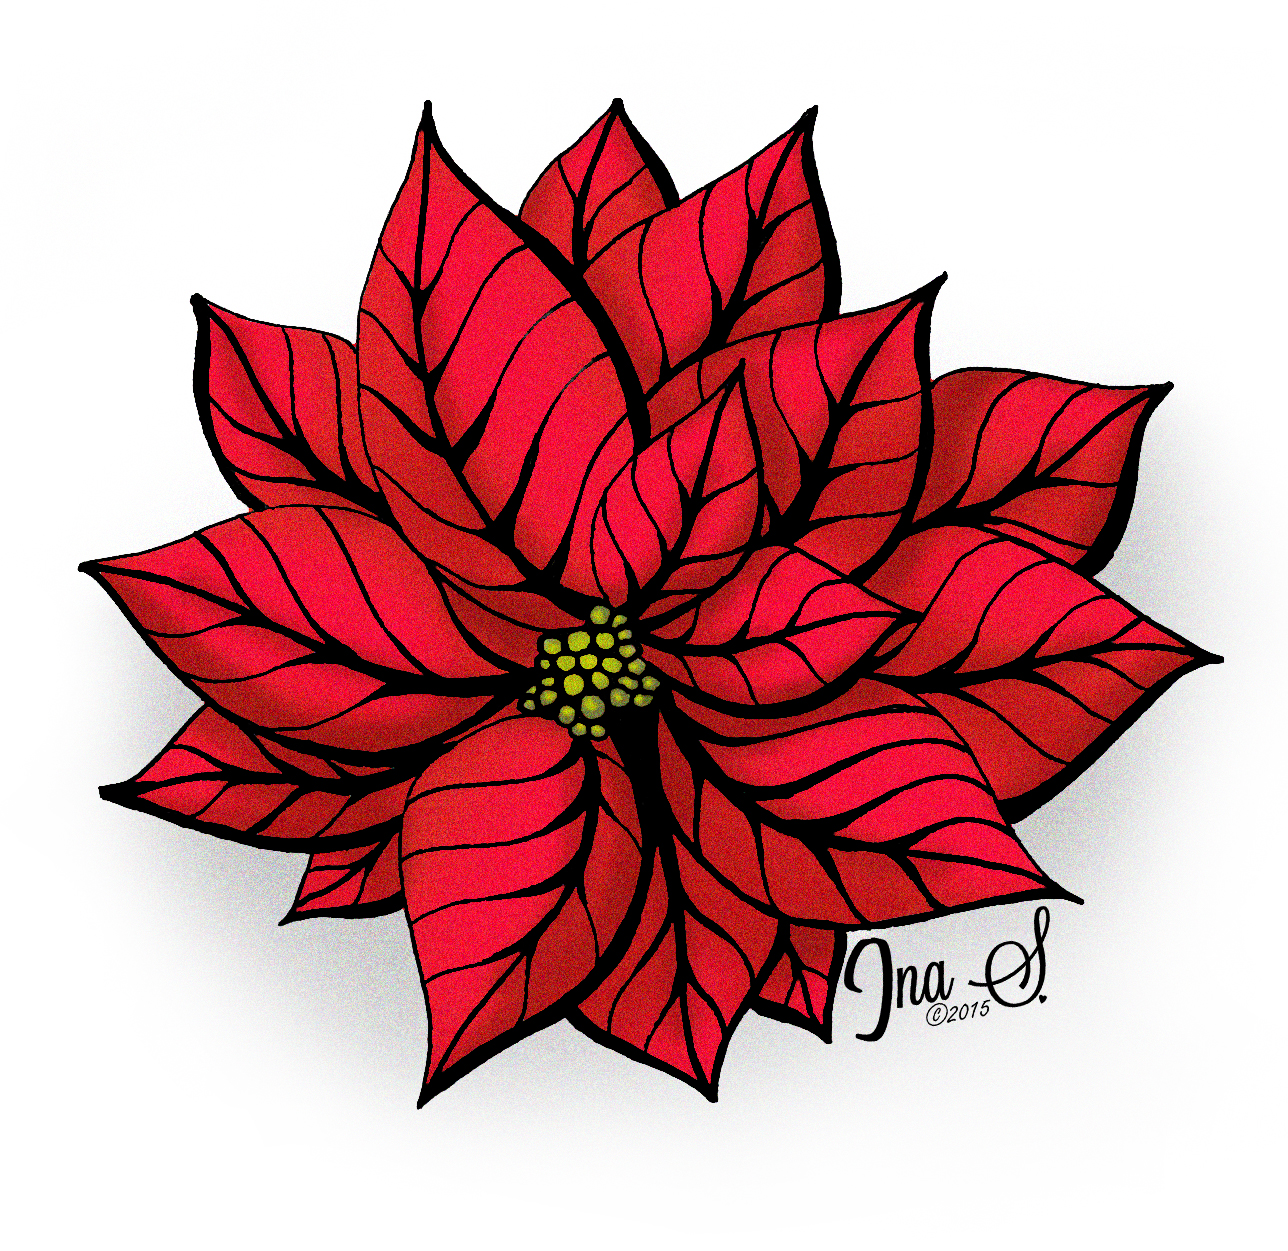 Poinsettia Flower Drawing at GetDrawings.com | Free for personal use ...